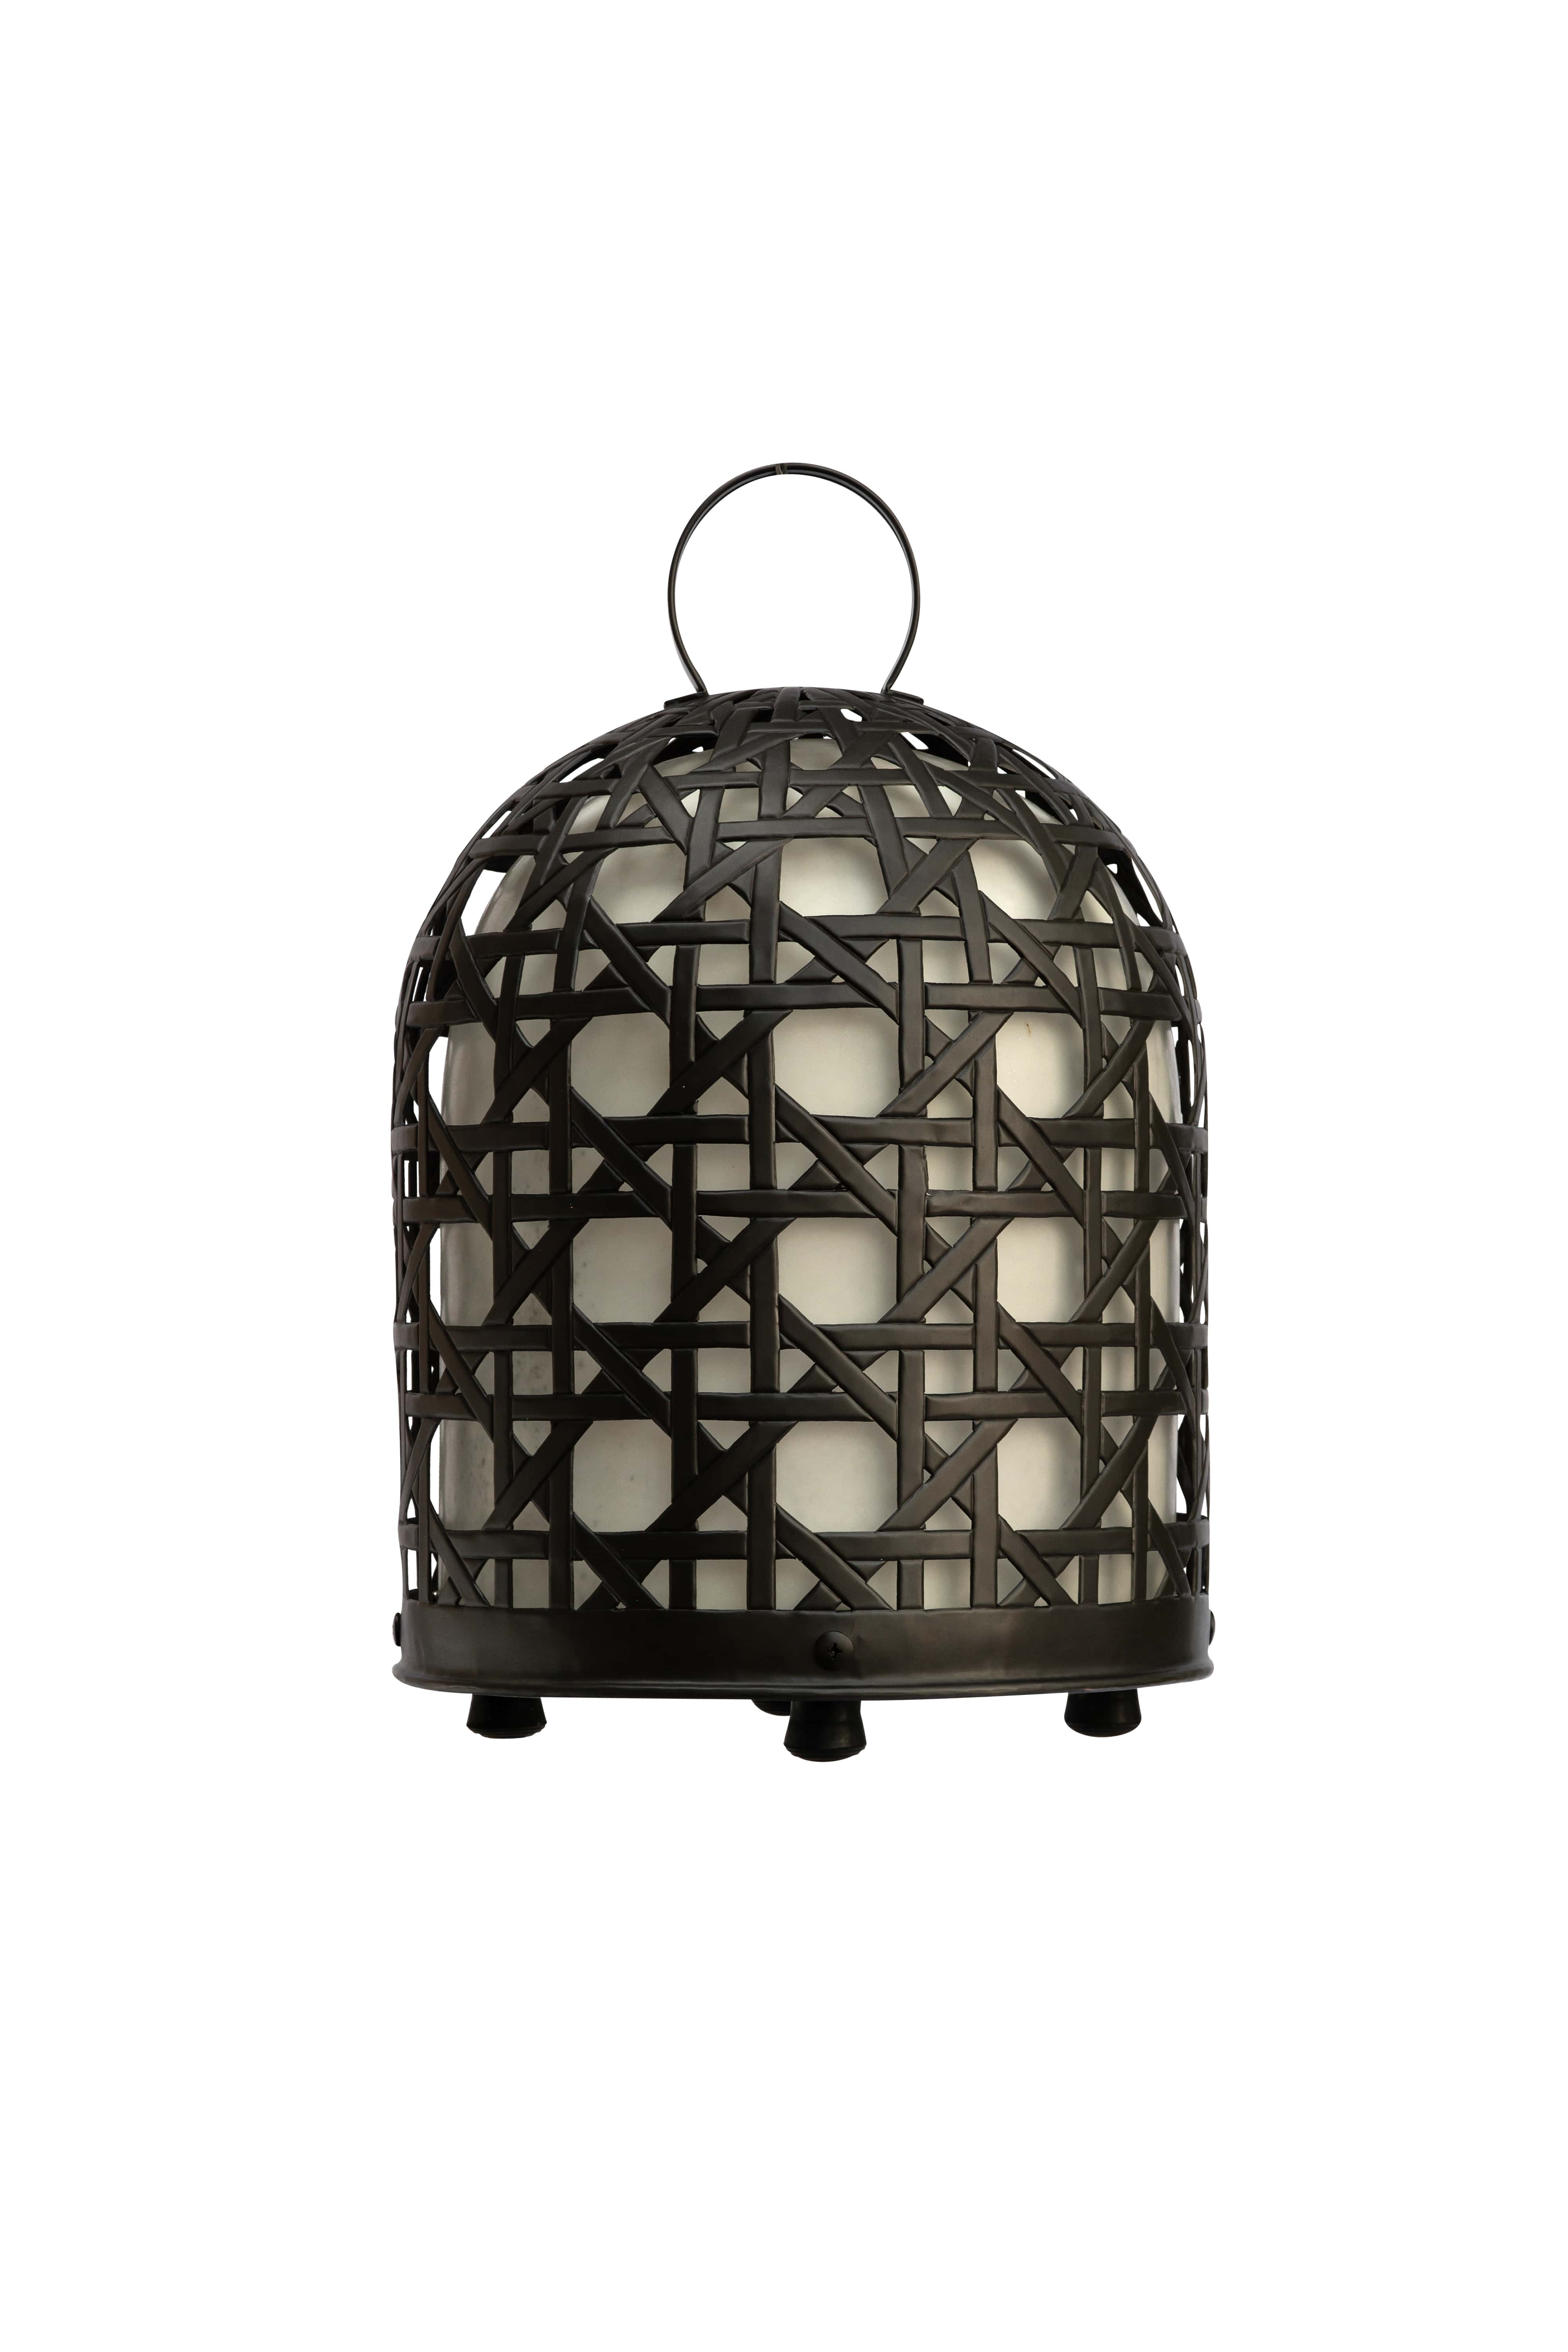 Rooster cage lamp, 61 Cm